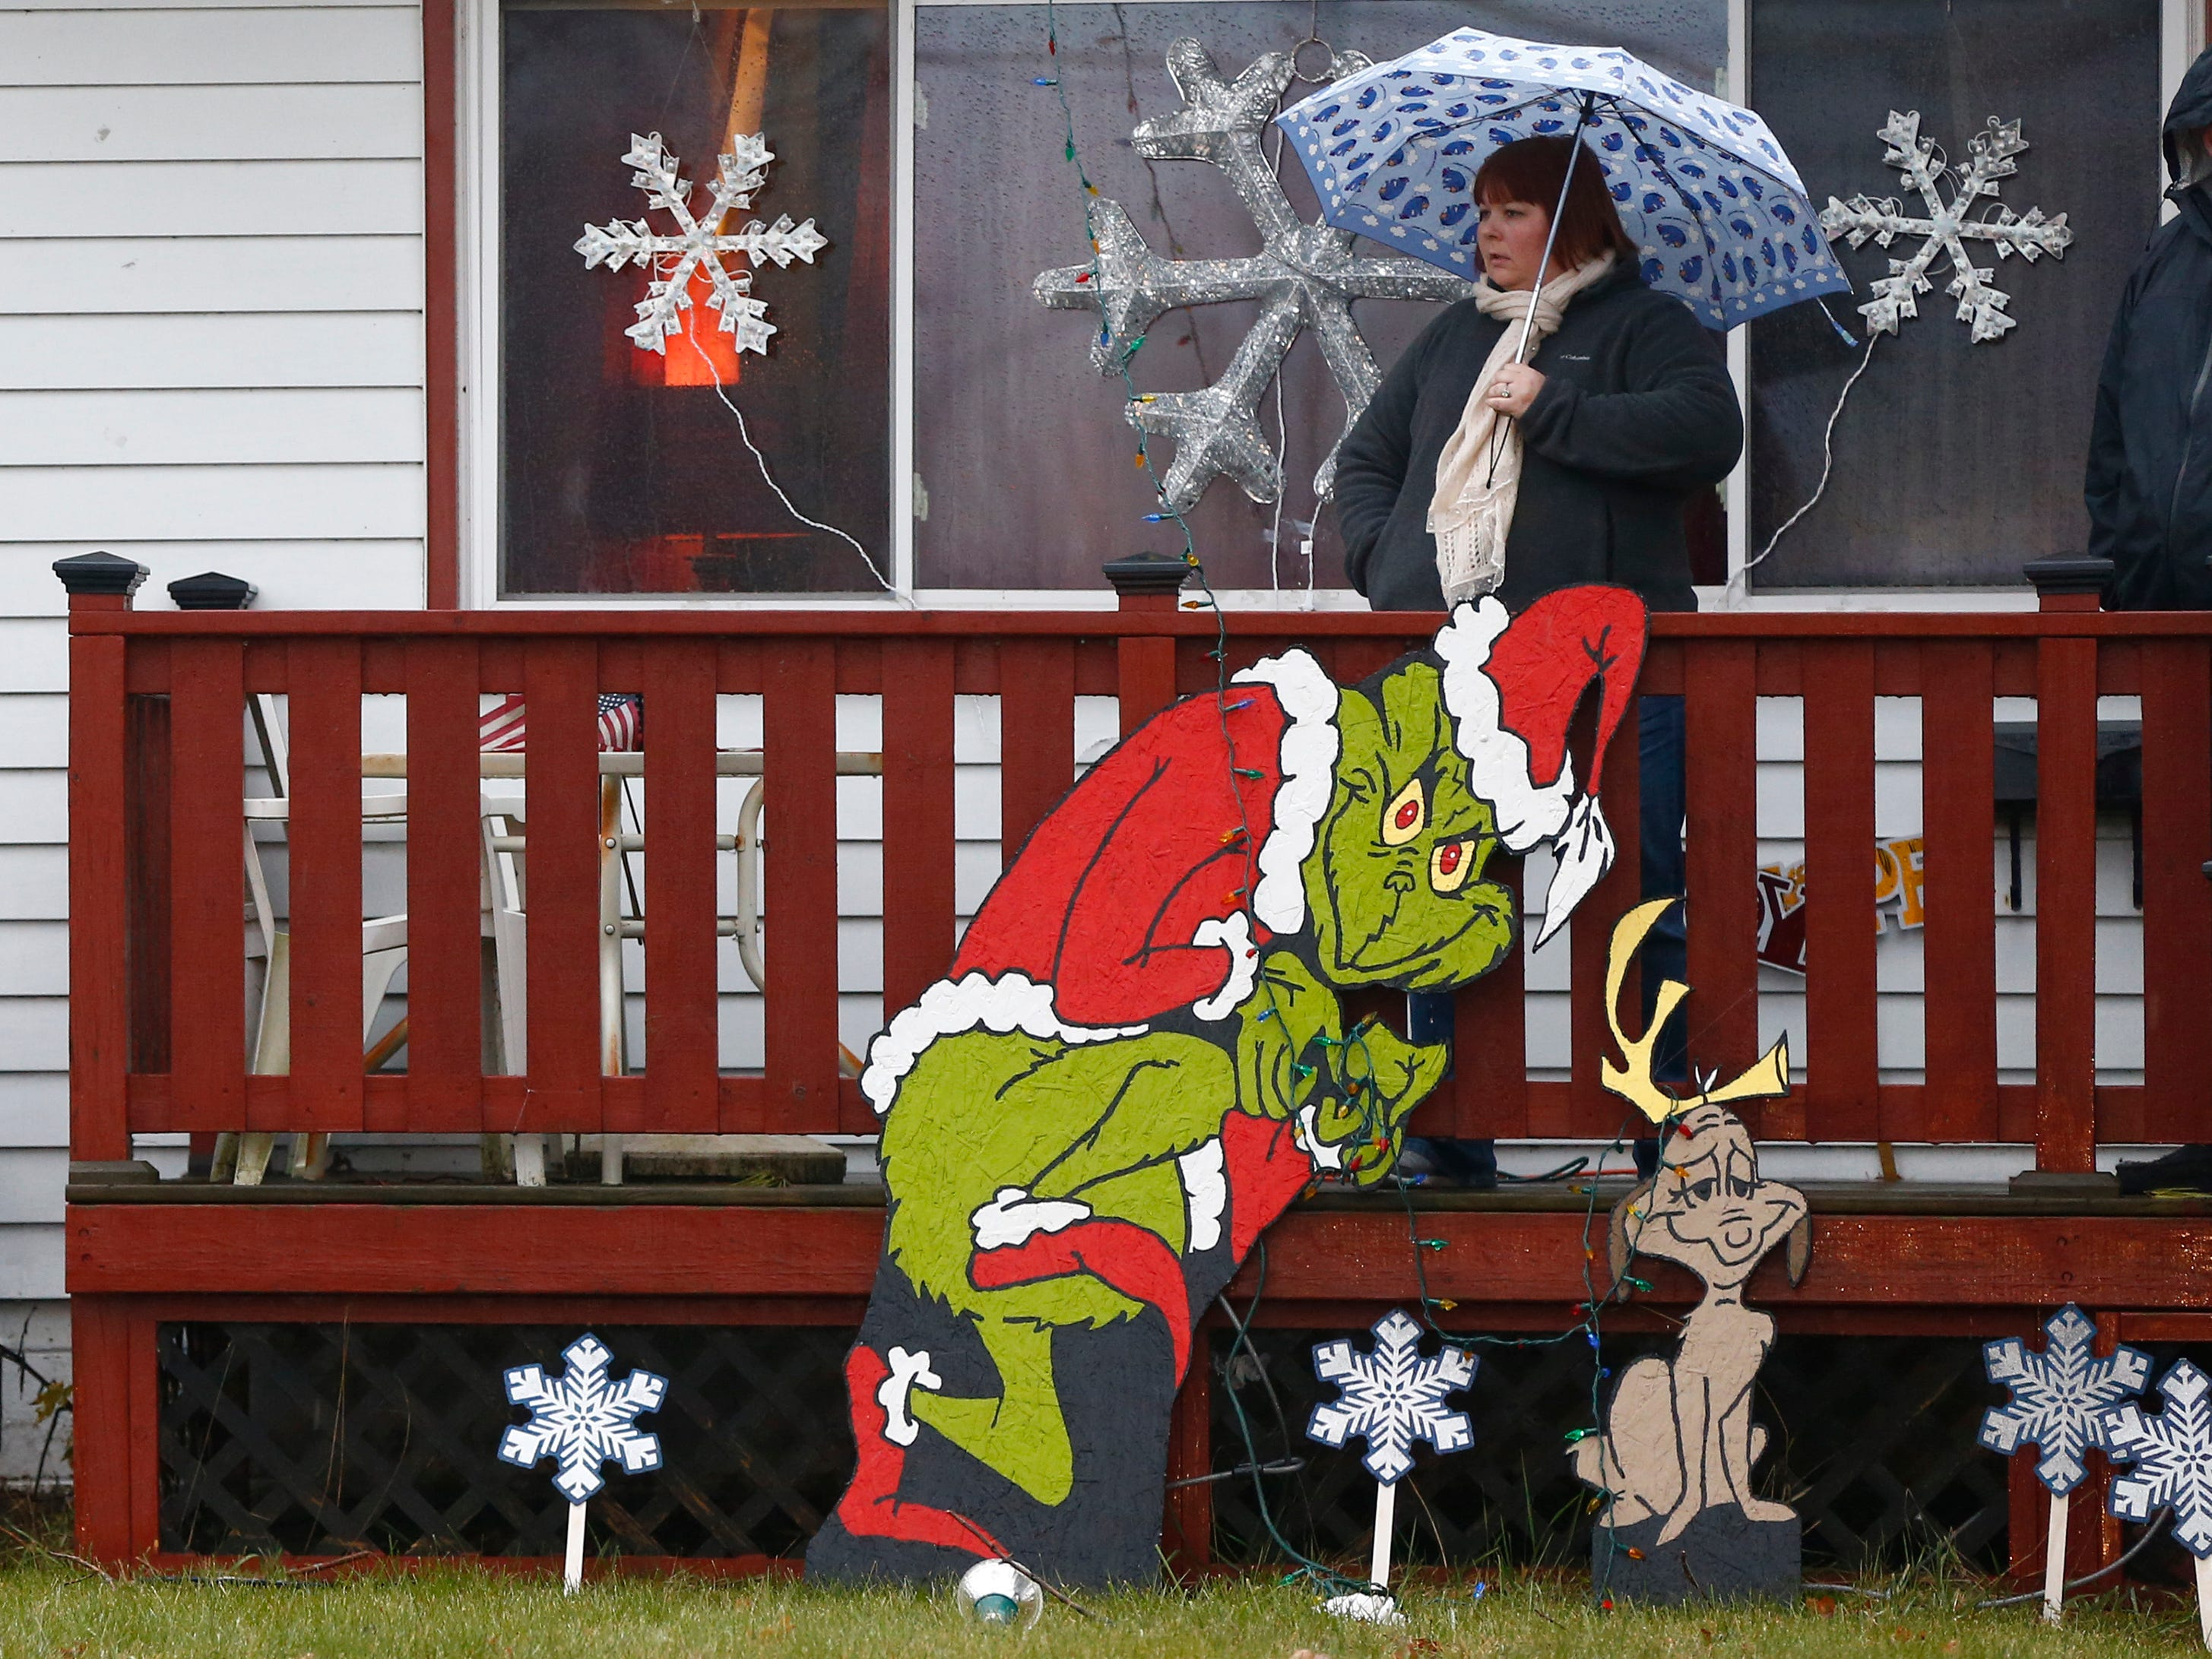 A parade watcher stays dry on her porch during the first city-sponsored St. Francis Christmas Parade on Dec. 1.